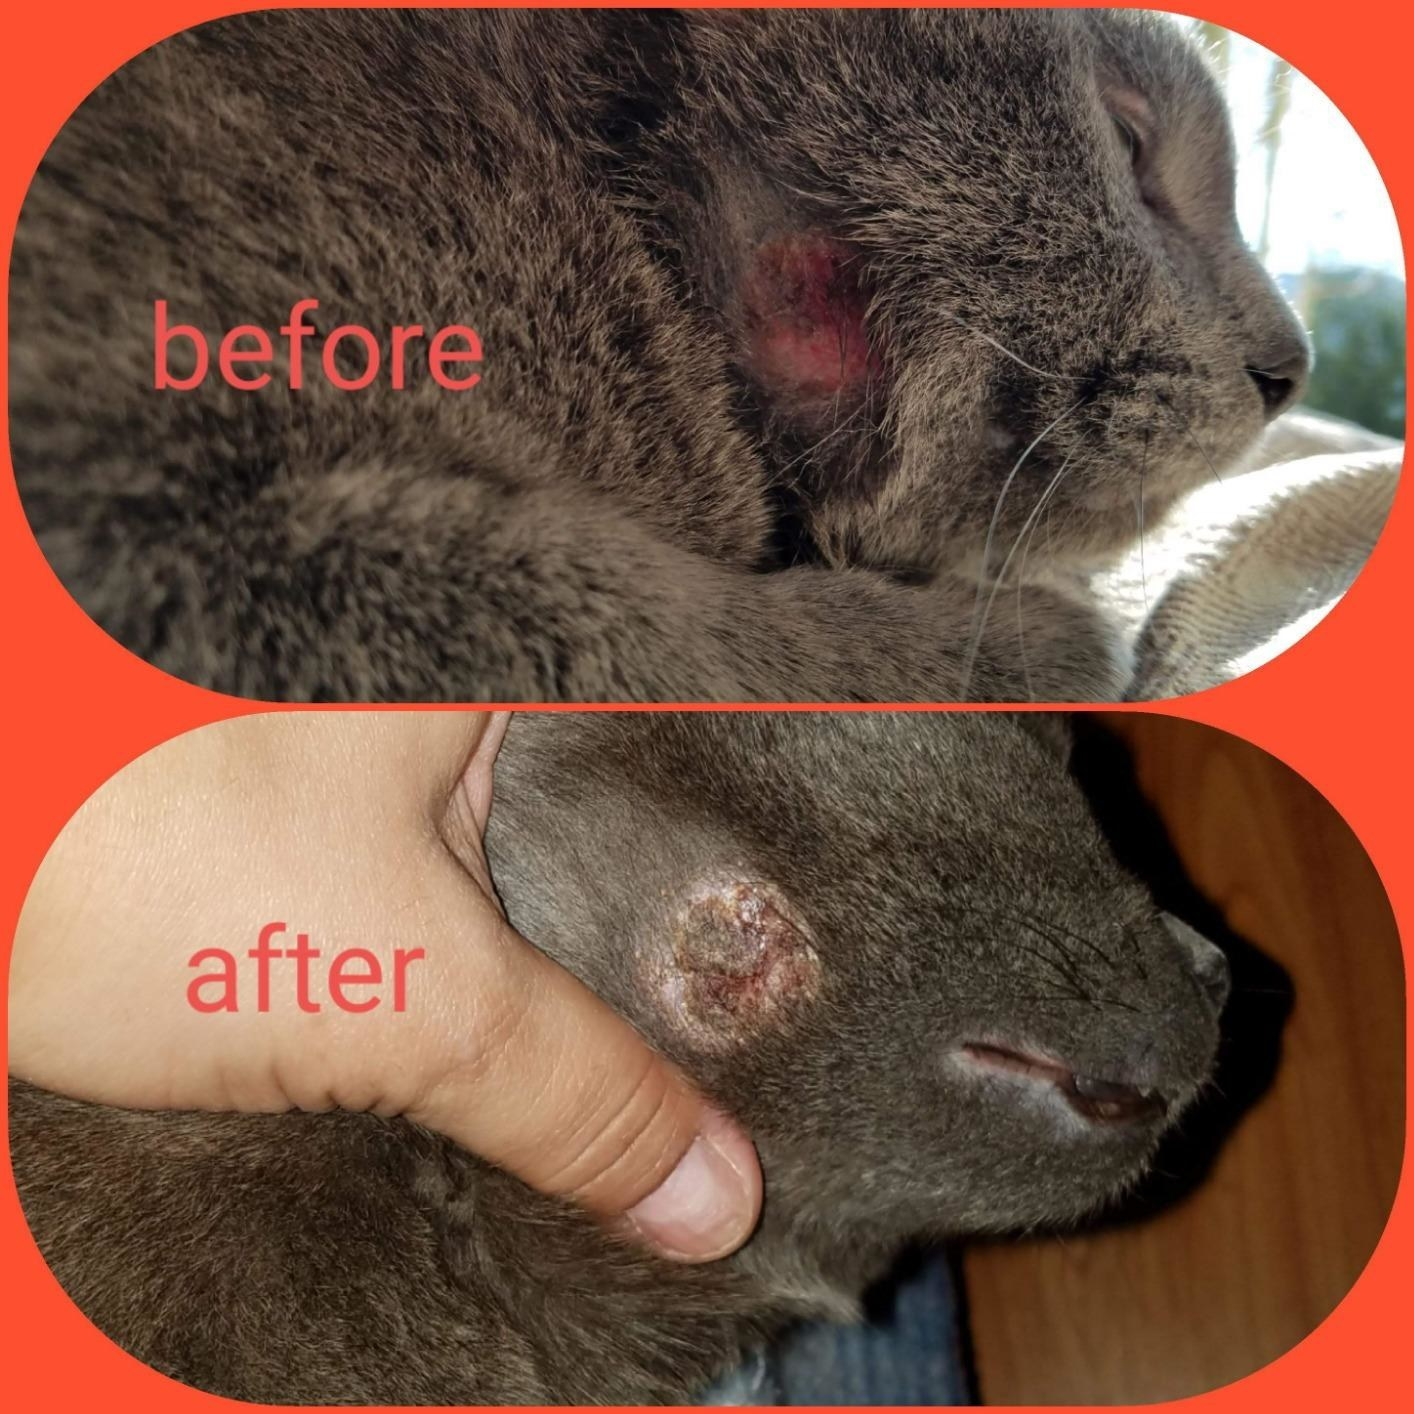 Review photo of cat before and after the spray